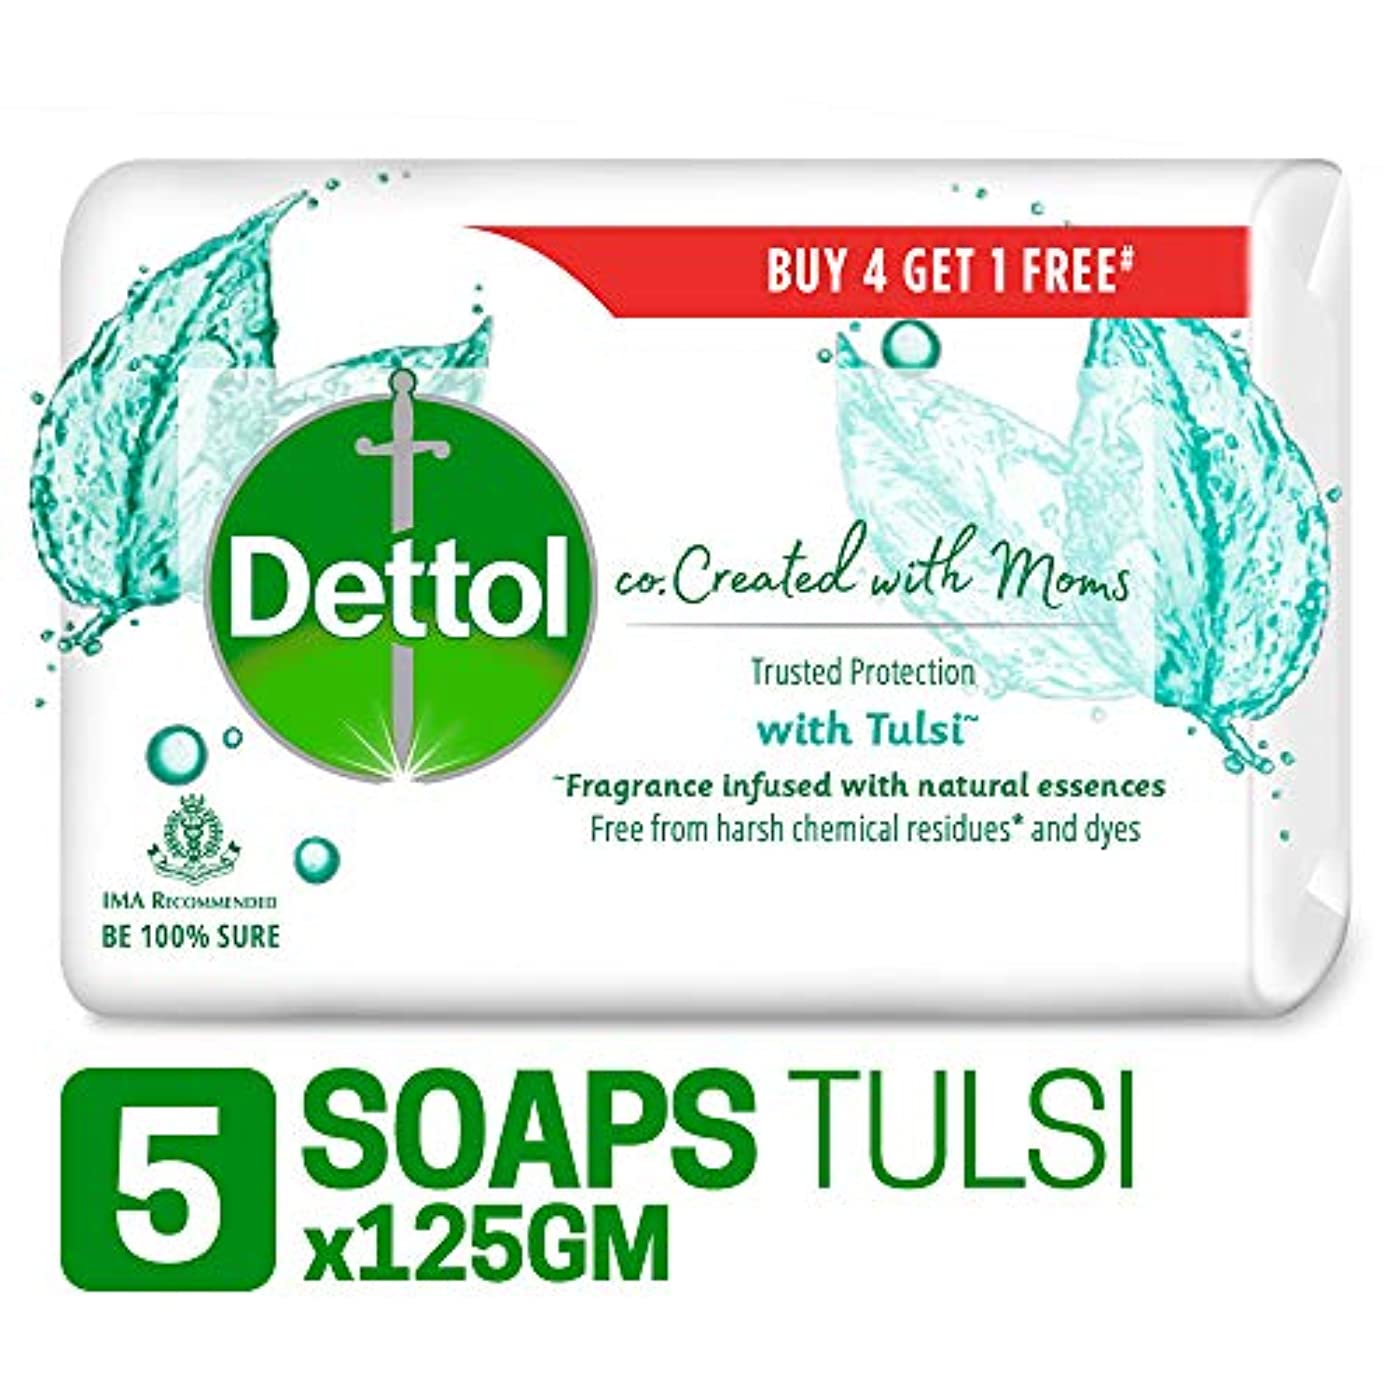 カップル上院議員共同選択Dettol Co-created with moms Tulsi Bathing Soap, 125gm (Buy 4 Get 1 Free)